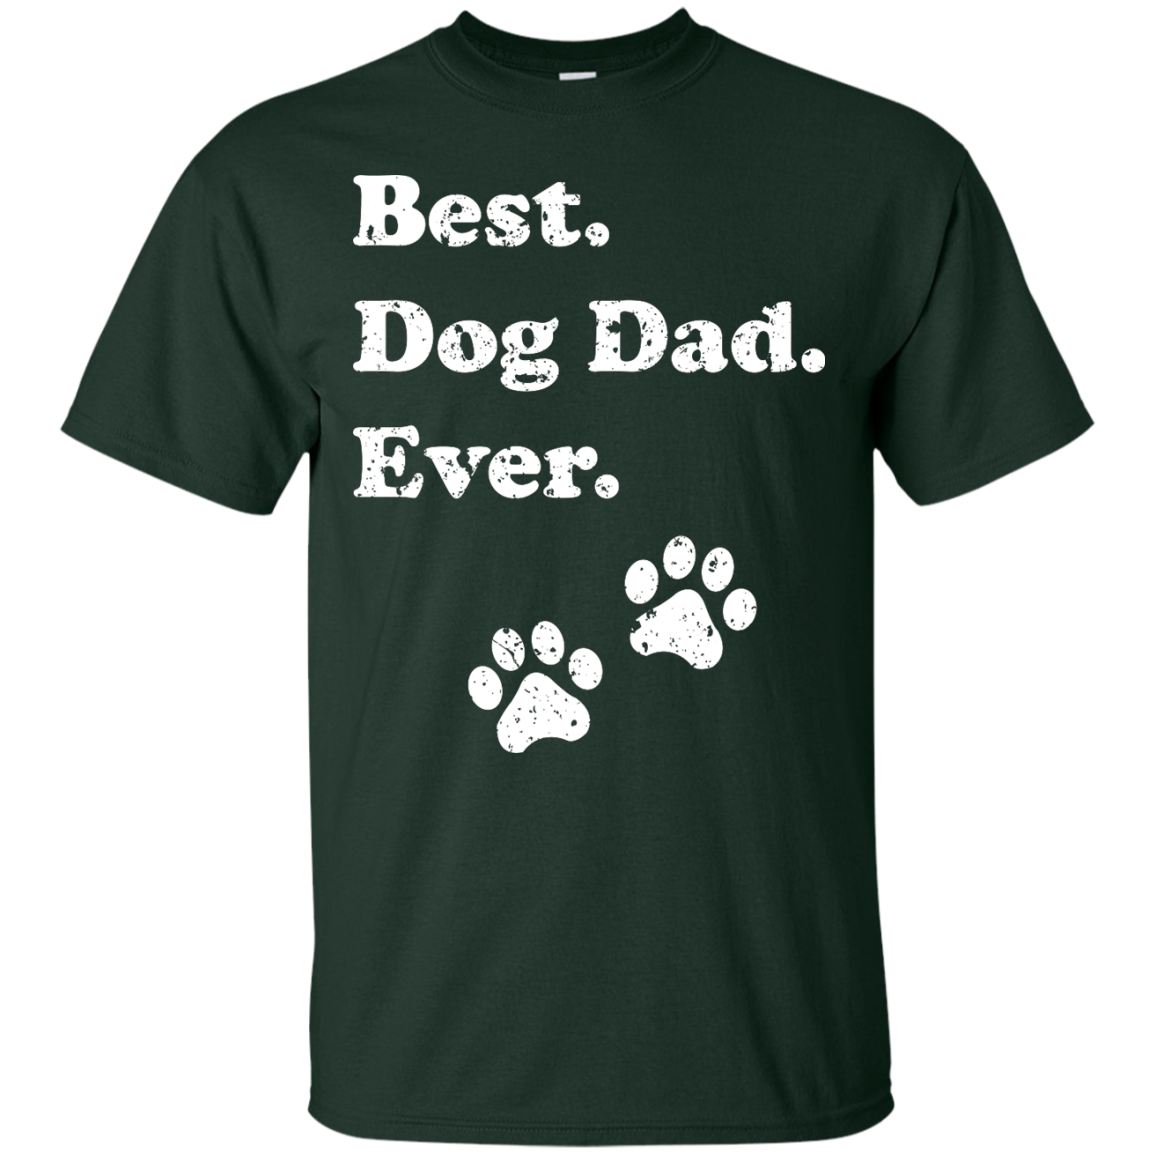 Best Dog Dad Ever - T Shirt - OMG I Love Dogs